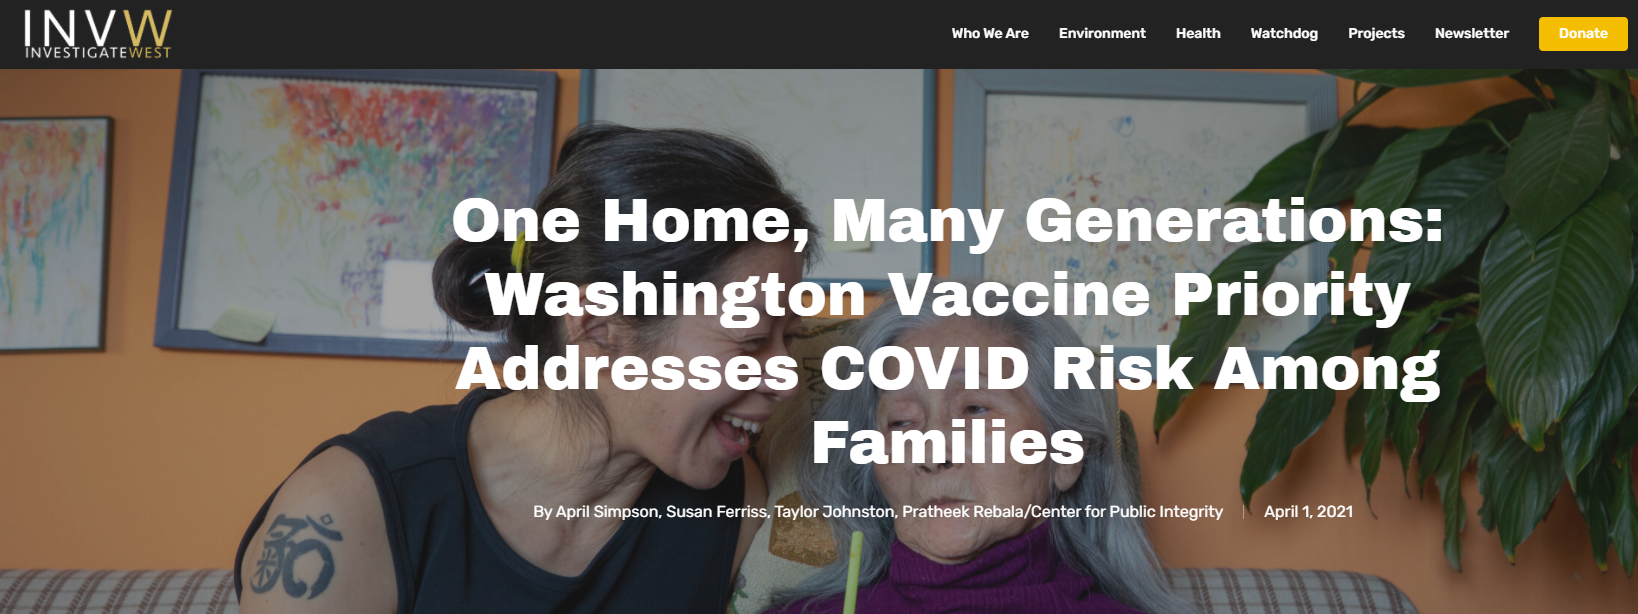 One Home, Many Generations: Washington Vaccine Priority Addresses COVID Risk Among Families